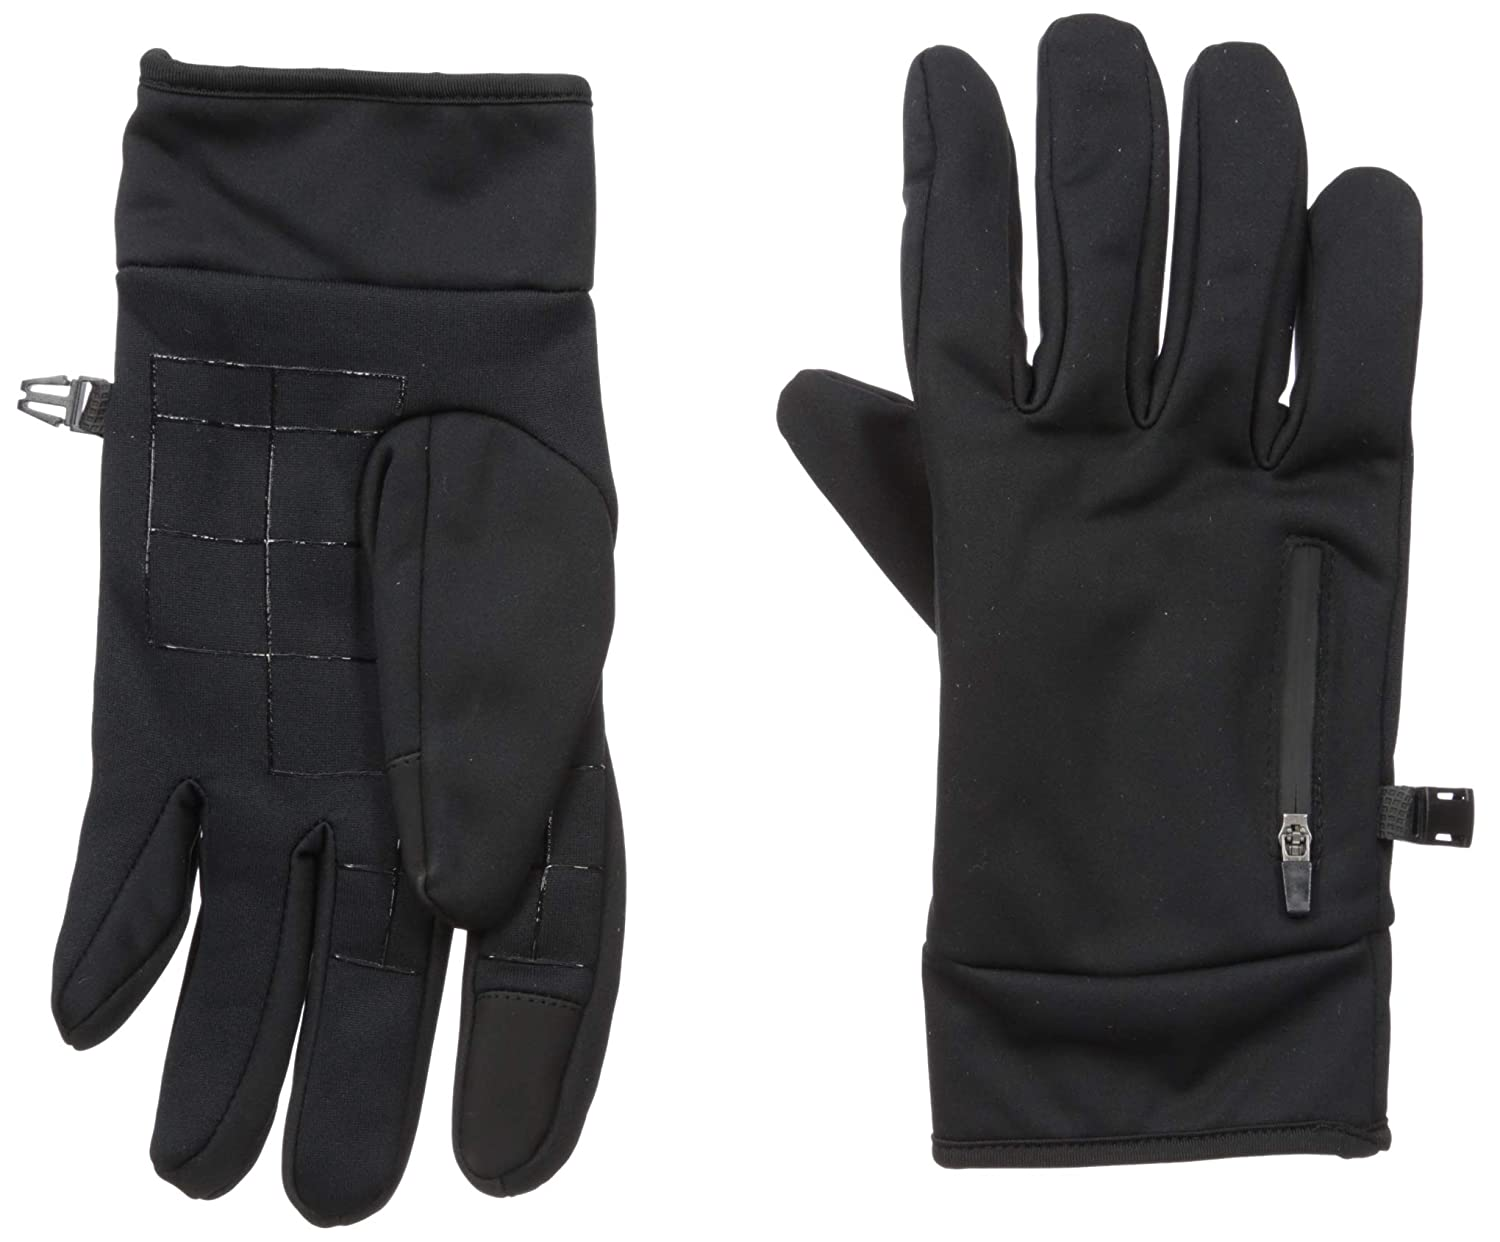 Kenneth Cole REACTION Mens Warm Winter Gloves